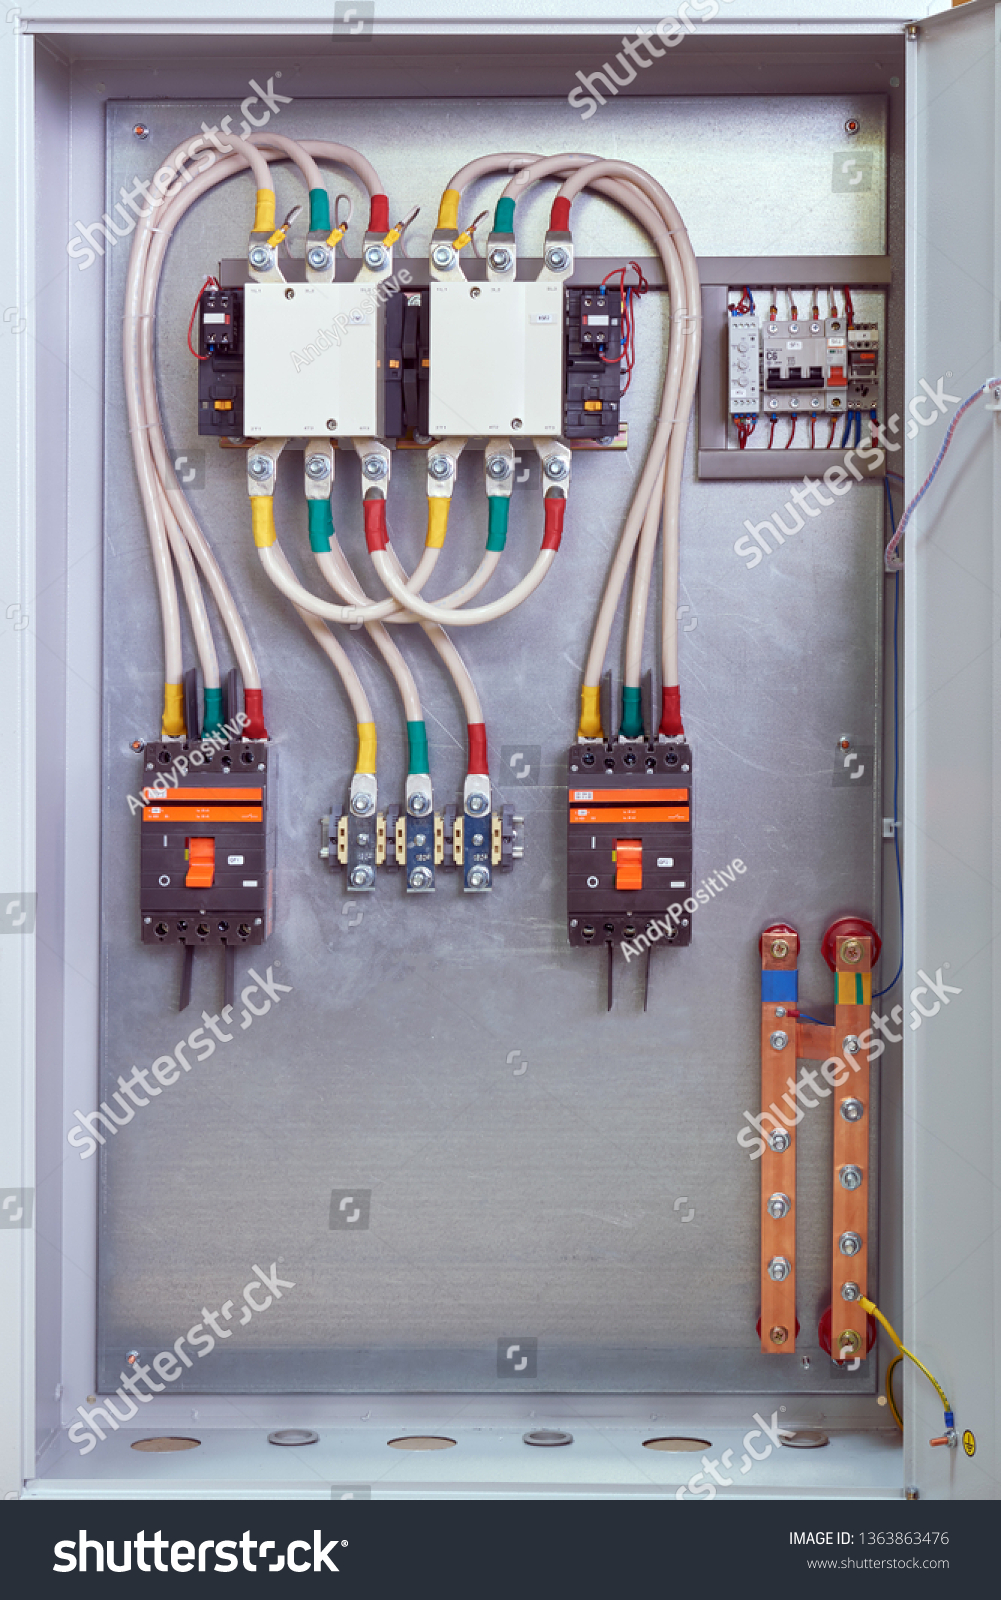 hight resolution of electrical cabinet with contactors circuit breakers voltage relays and through terminals electrical cables